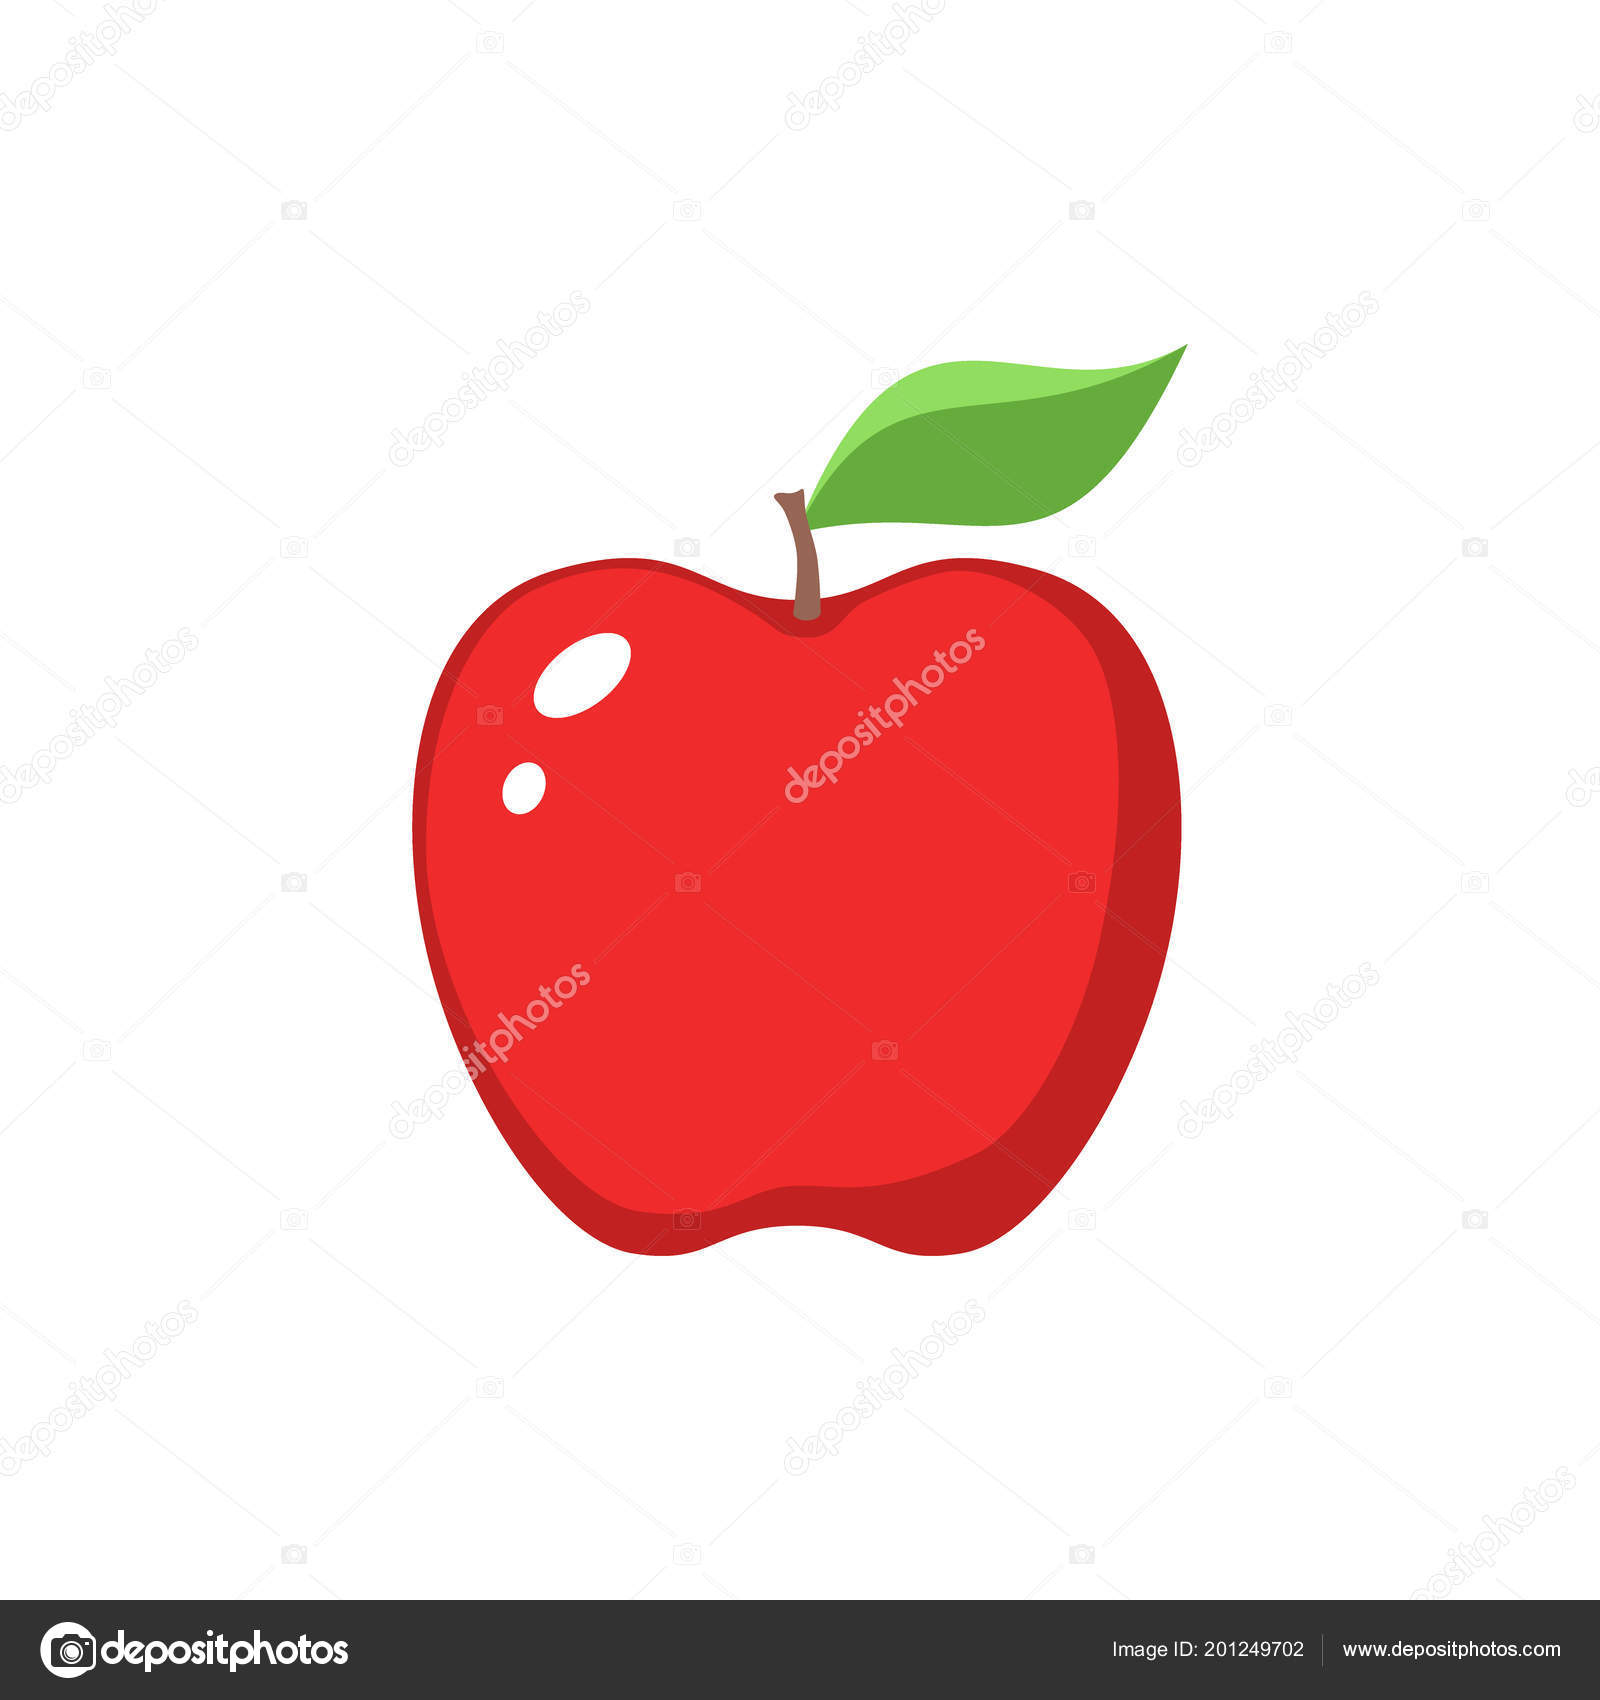 hight resolution of red apple clipart cartoon red apple leaf icon stock vector